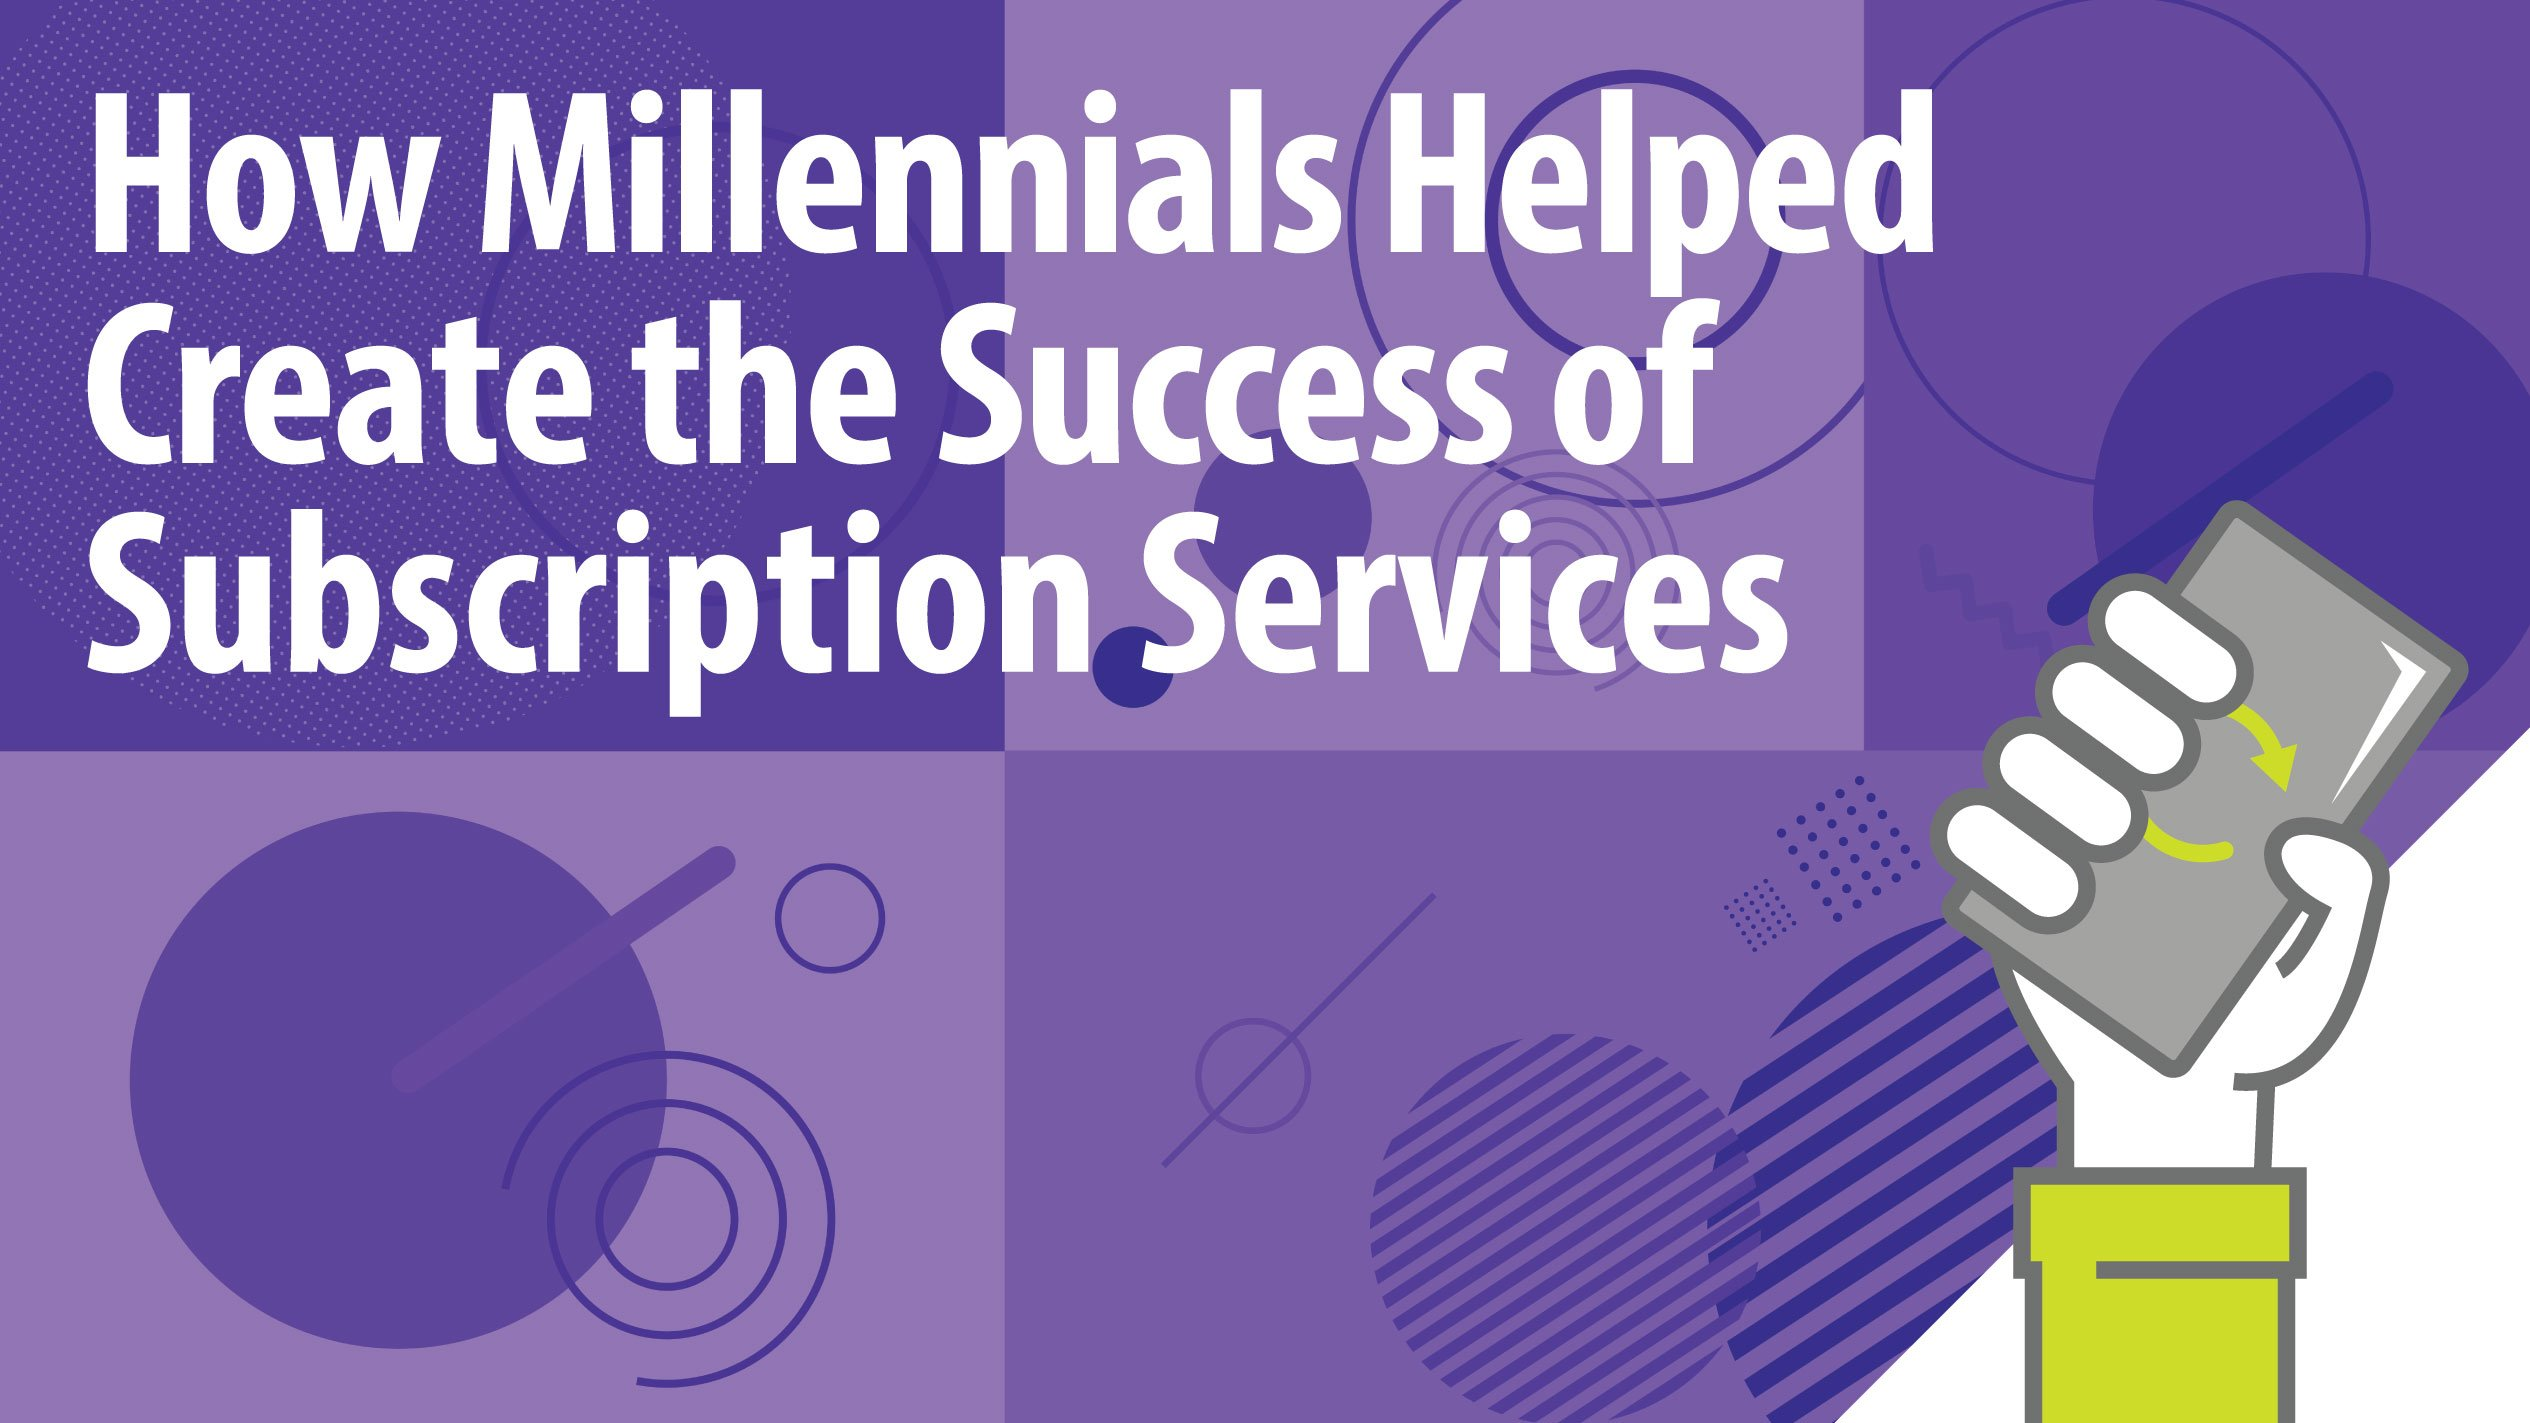 How Millennials Helped Create the Success of Subscription Services